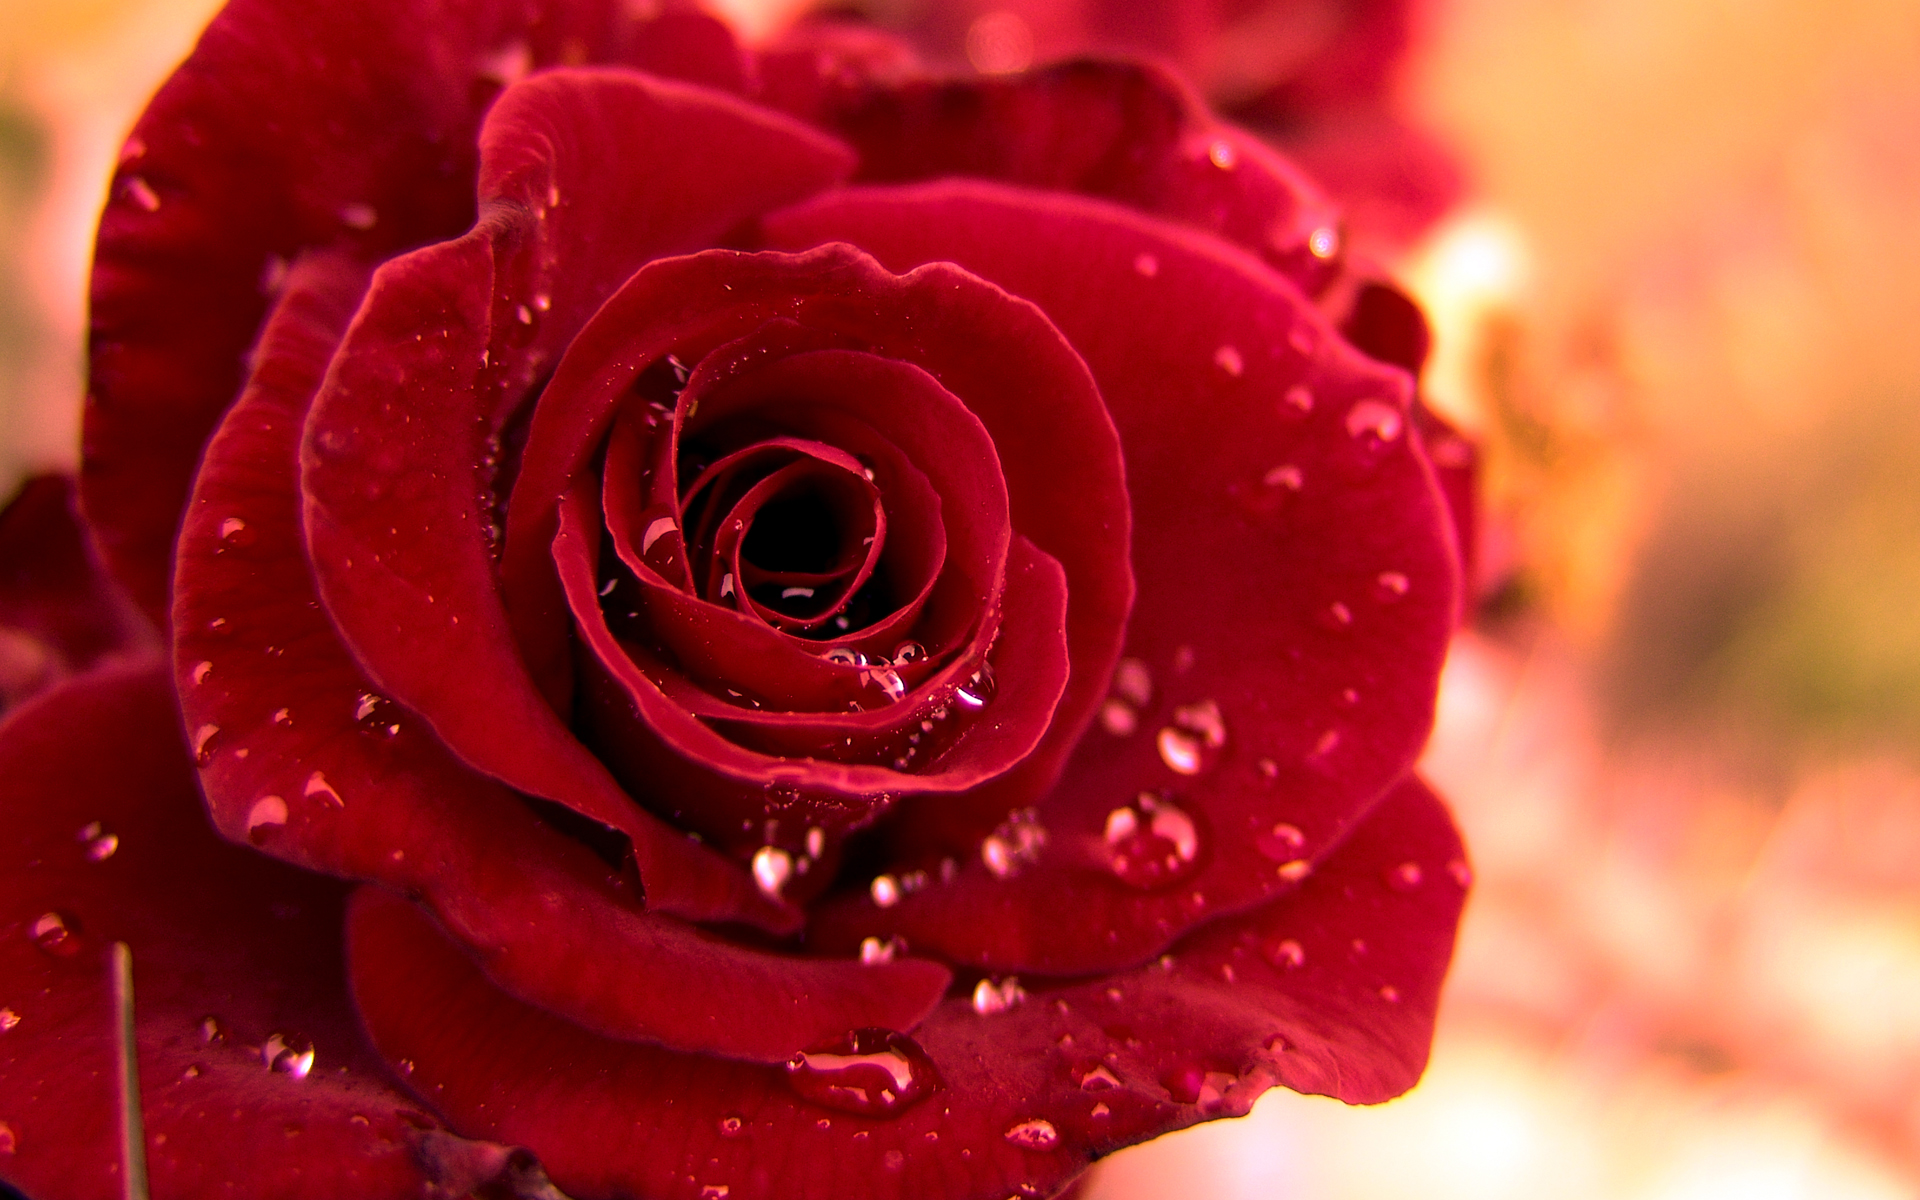 Flowers Images Red Roses Hd Wallpaper And Background Photos 34611286